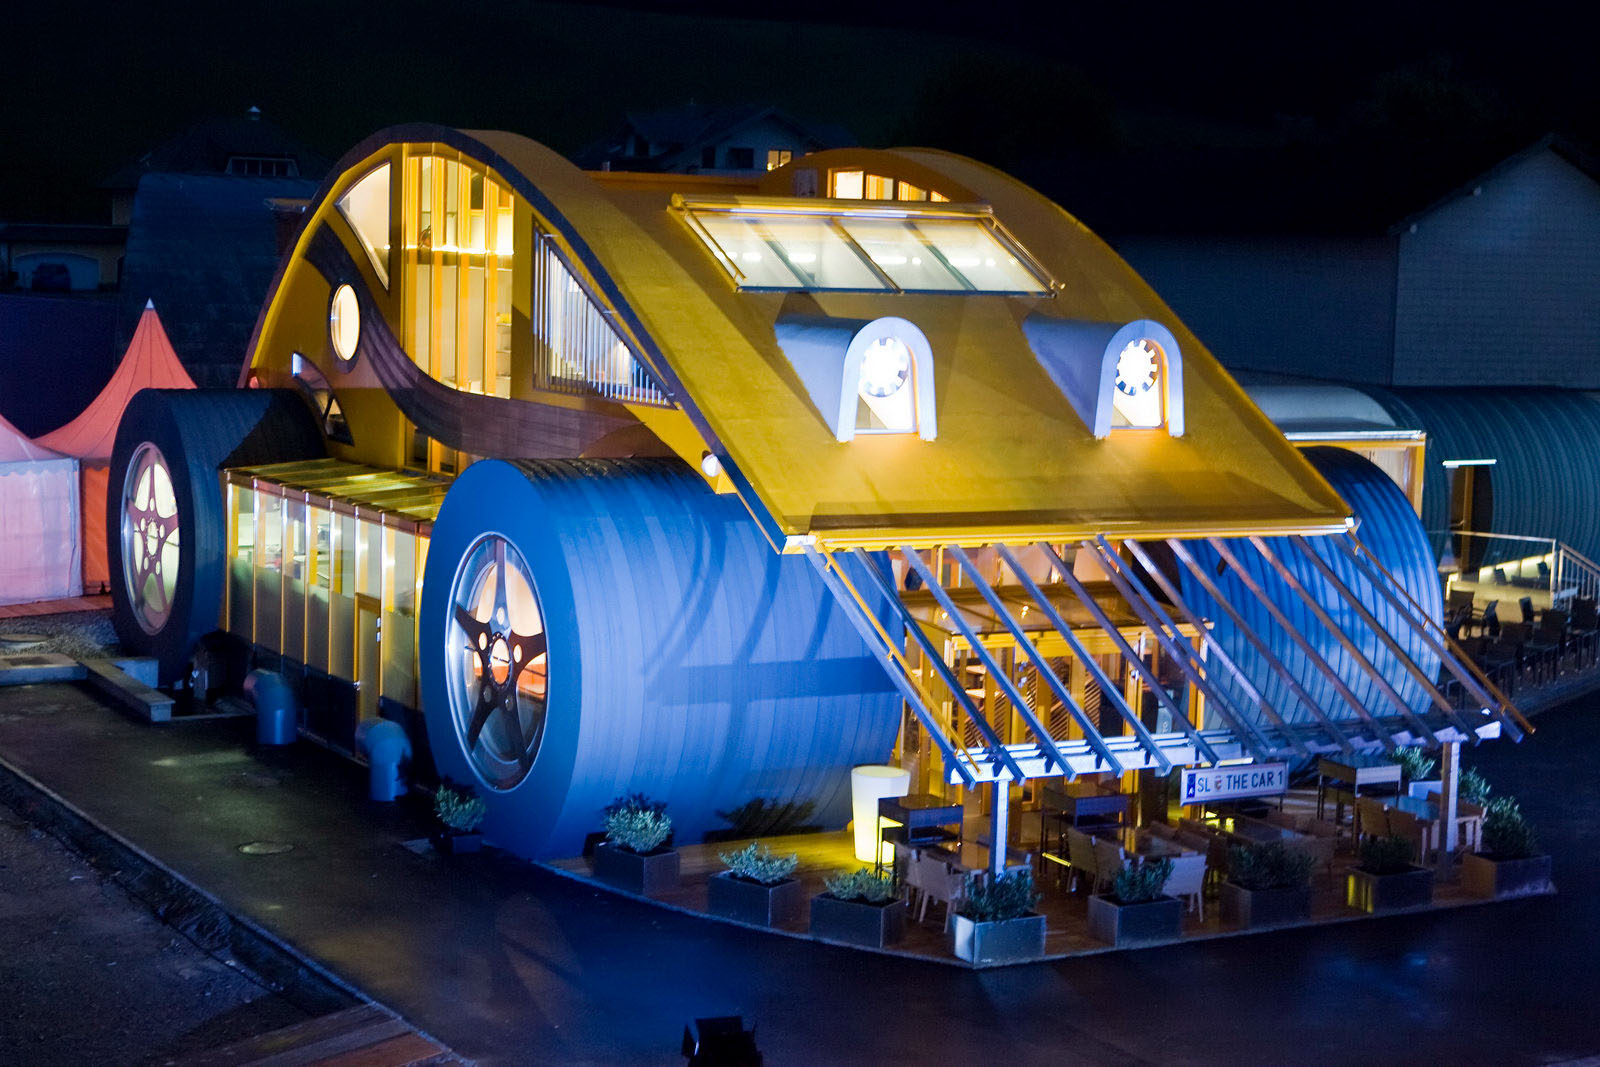 Vw beetle restaurant and bar in austria idesignarch for Car house